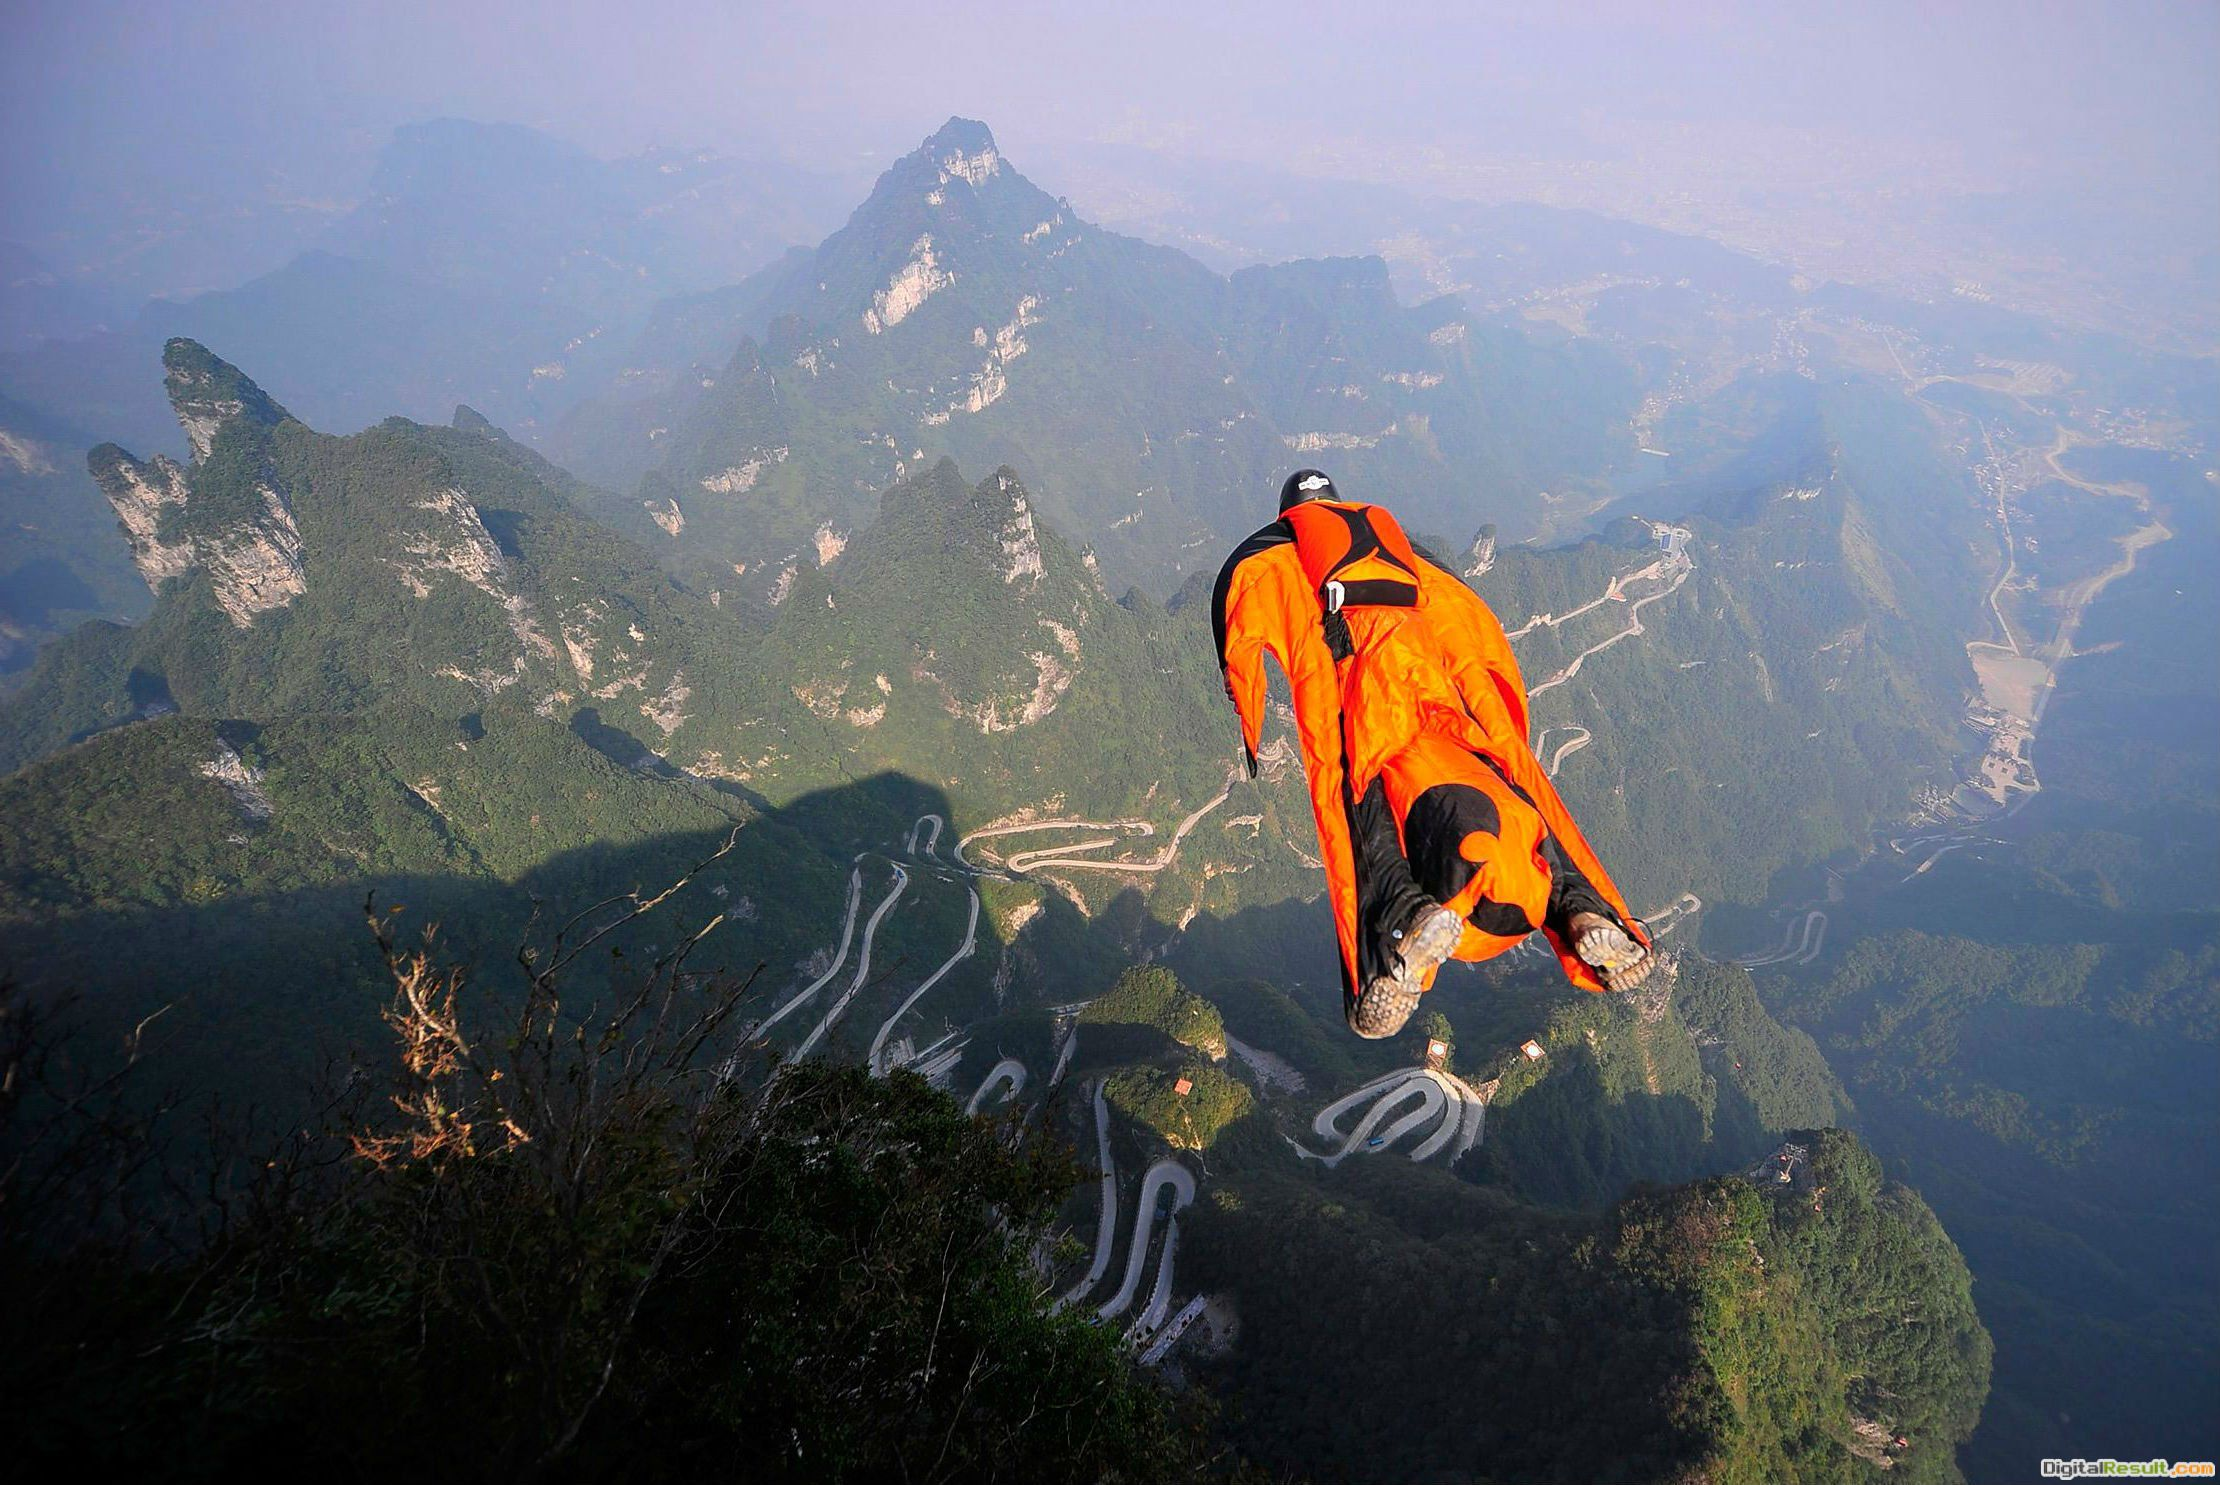 18 Awesome HD Skydiving 1744